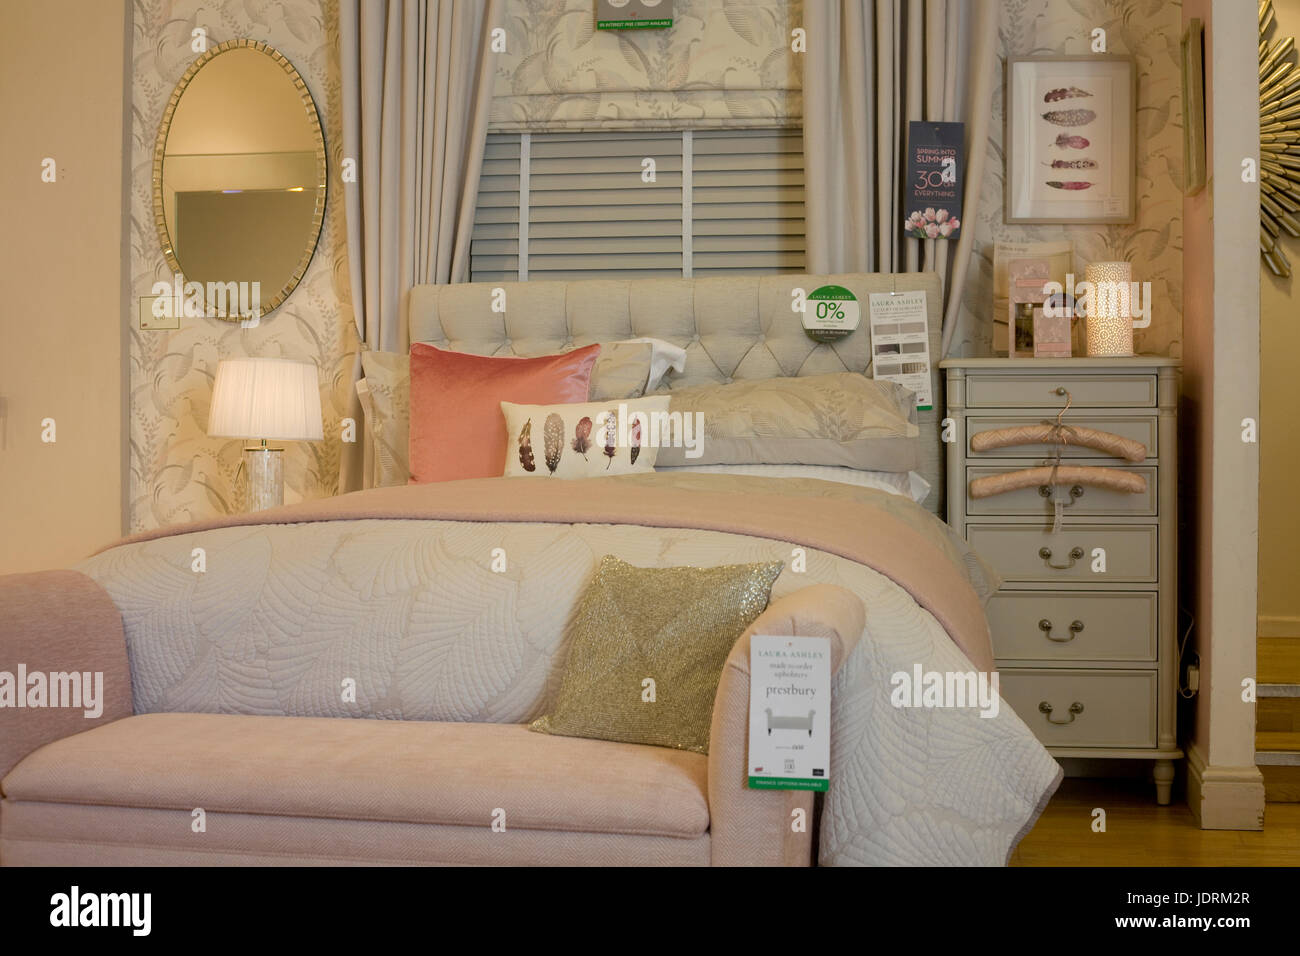 Laura Ashley Muebles Furniture Shop Interior Colour Stock Photos Furniture Shop